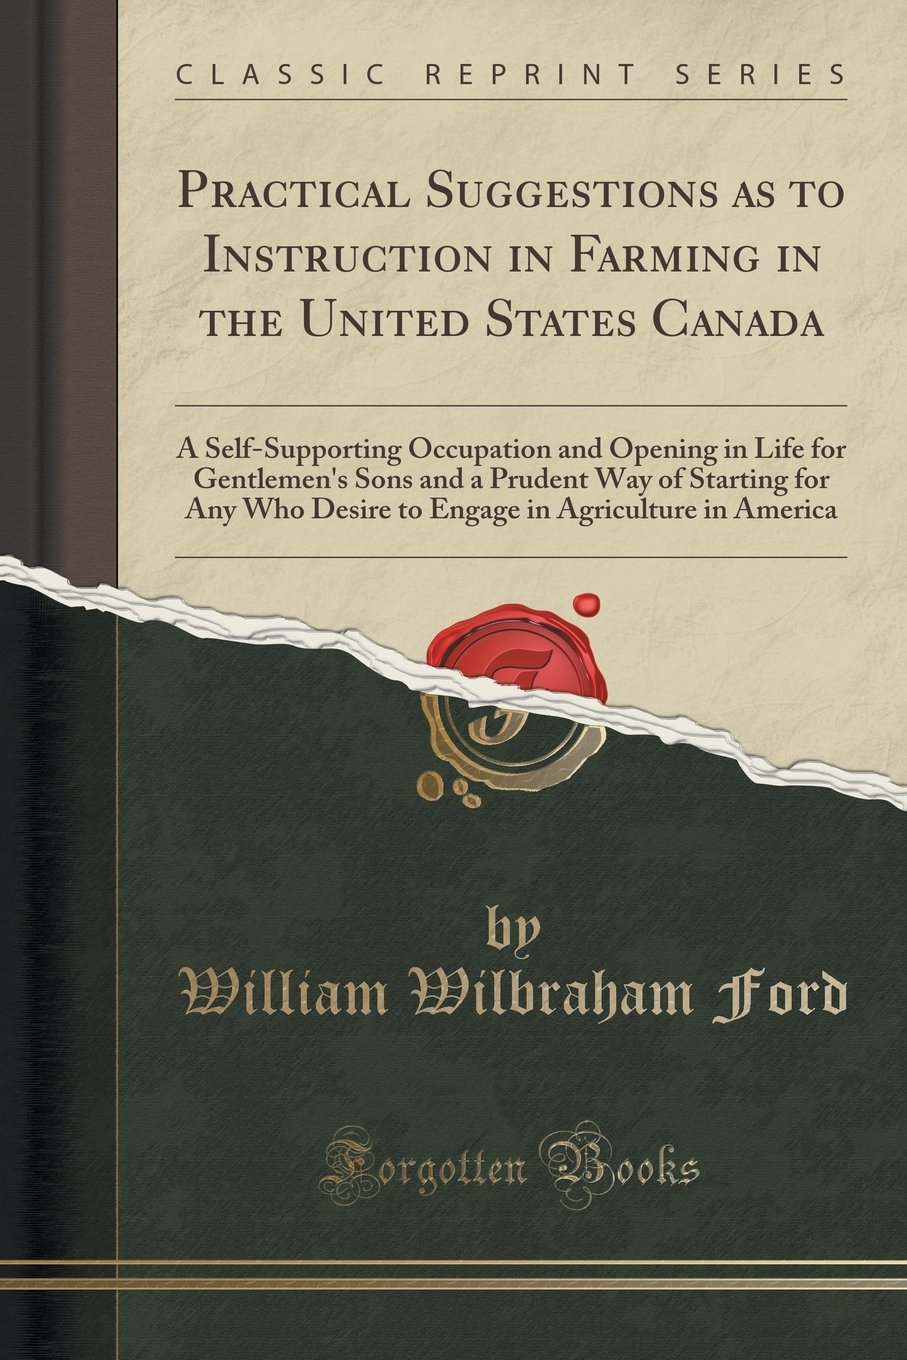 Download Practical Suggestions as to Instruction in Farming in the United States Canada: A Self-Supporting Occupation and Opening in Life for Gentlemen's Sons ... in Agriculture in America (Classic Reprint) pdf epub